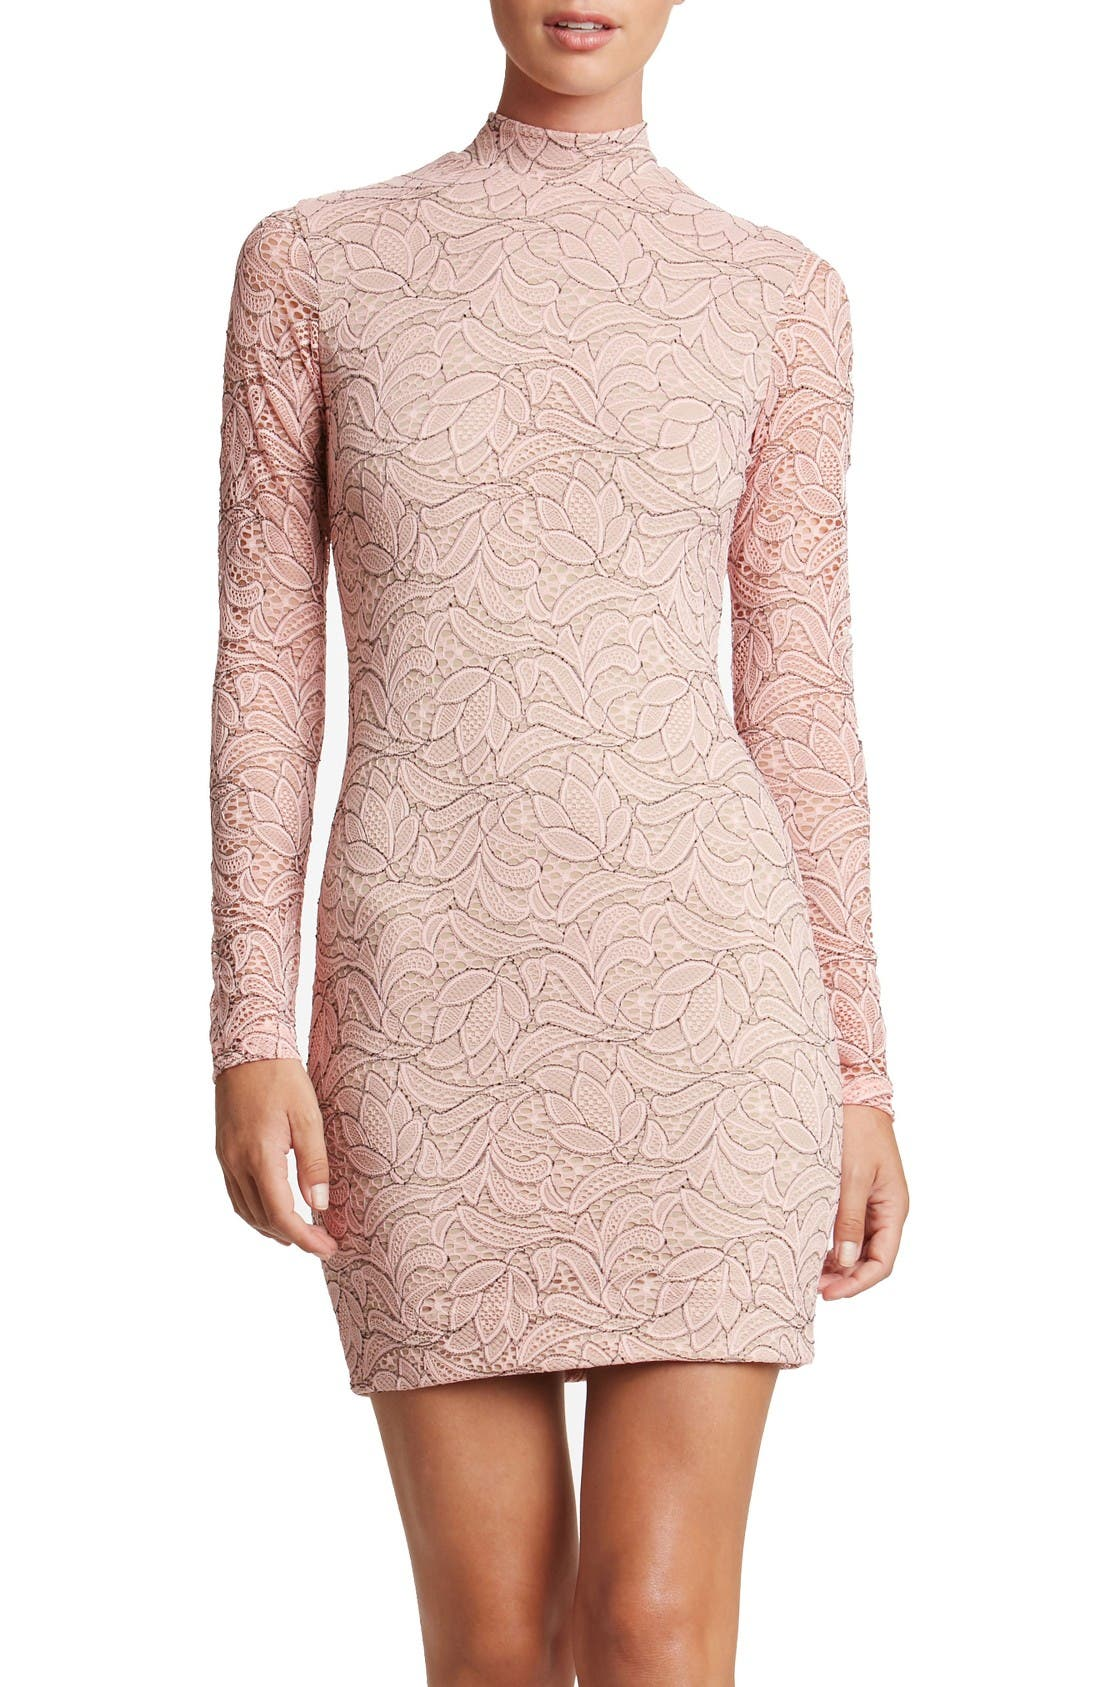 Alternate Image 1 Selected - Dress the Population Penelope Lace Body-Con Dress